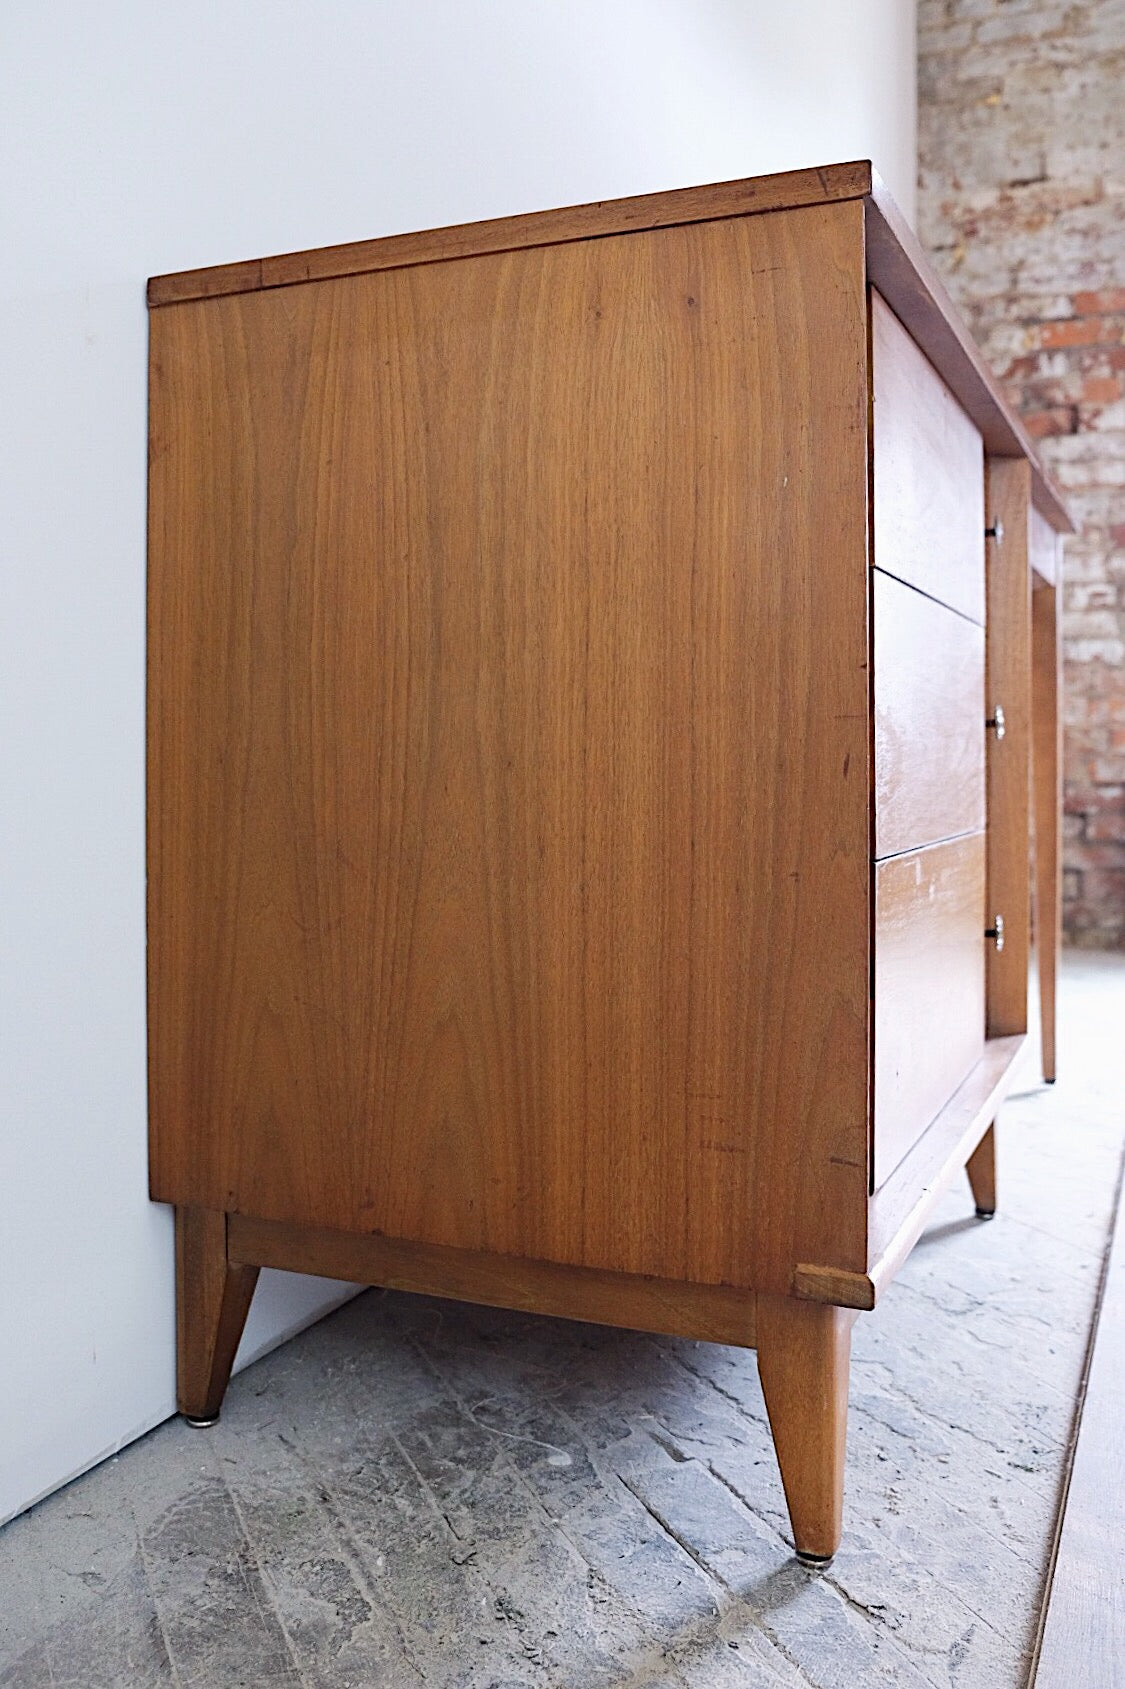 Art Deco/Mid Century Modern Desk Three Drawers Tapered Legs Carved Register Design Marbled Dappled Top